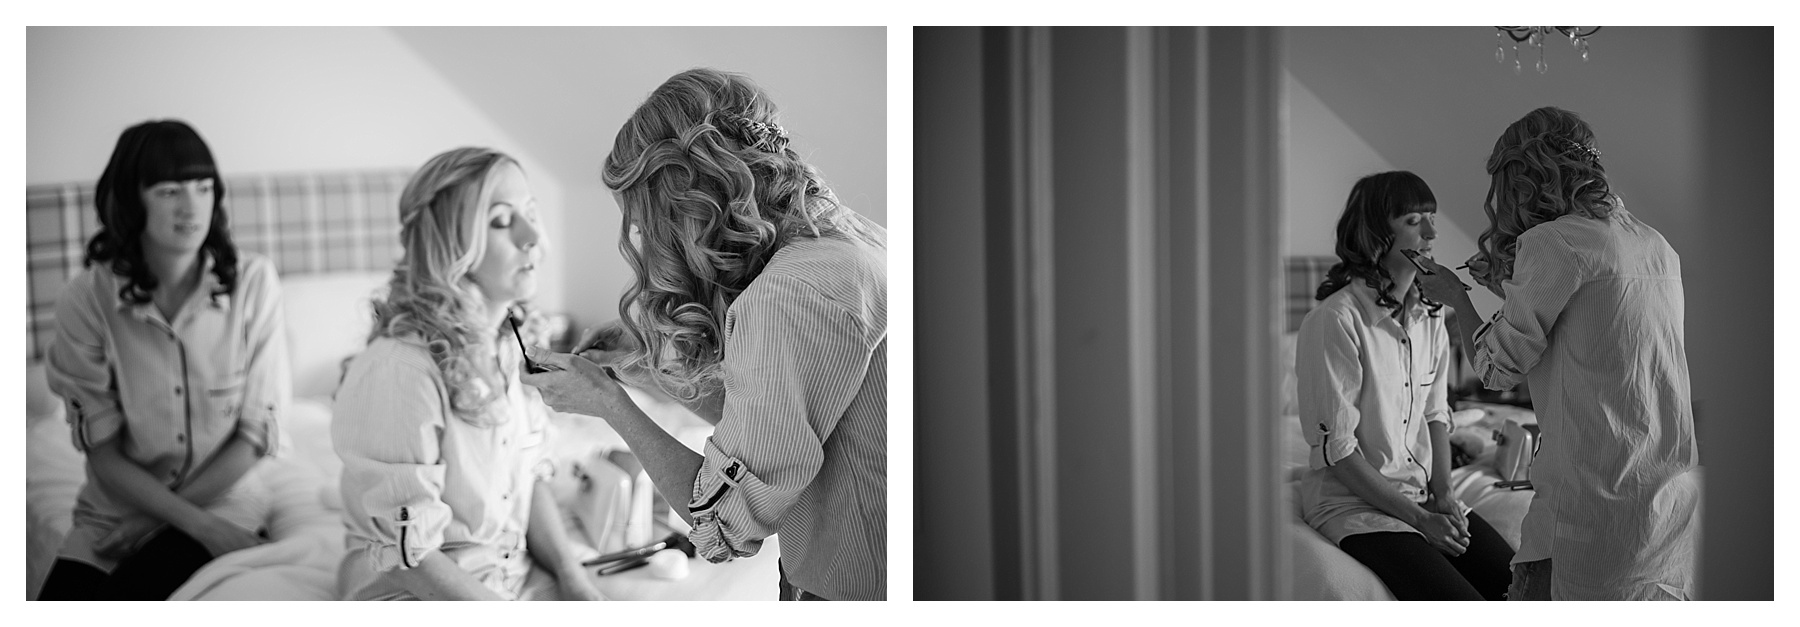 Loch Lomond Arms wedding photographer